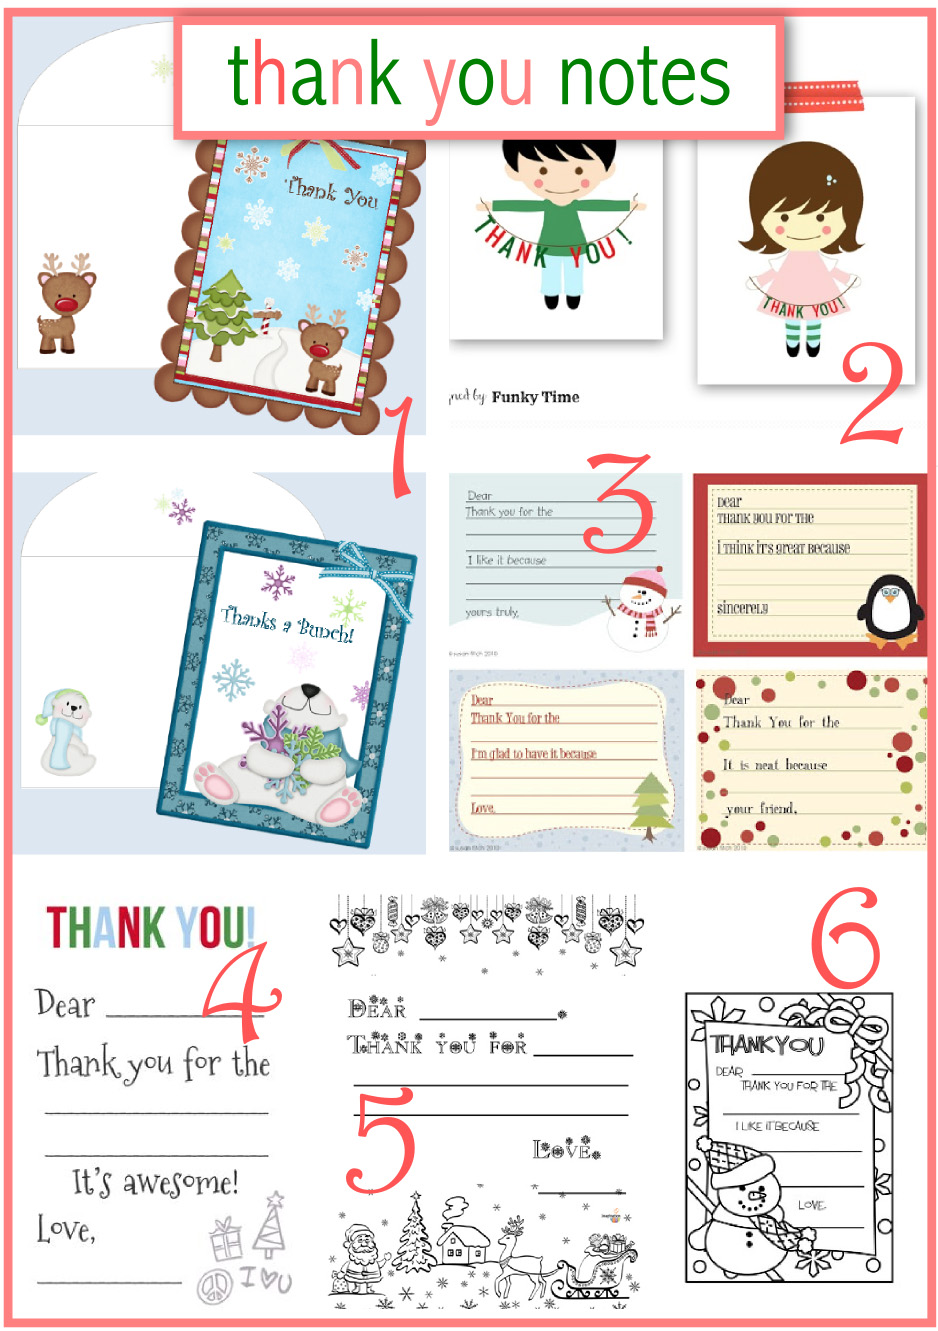 Free Printable For 12 Months Of Pre Planned Date Nights: 10 + Free Printable Christmas Thank You Notes